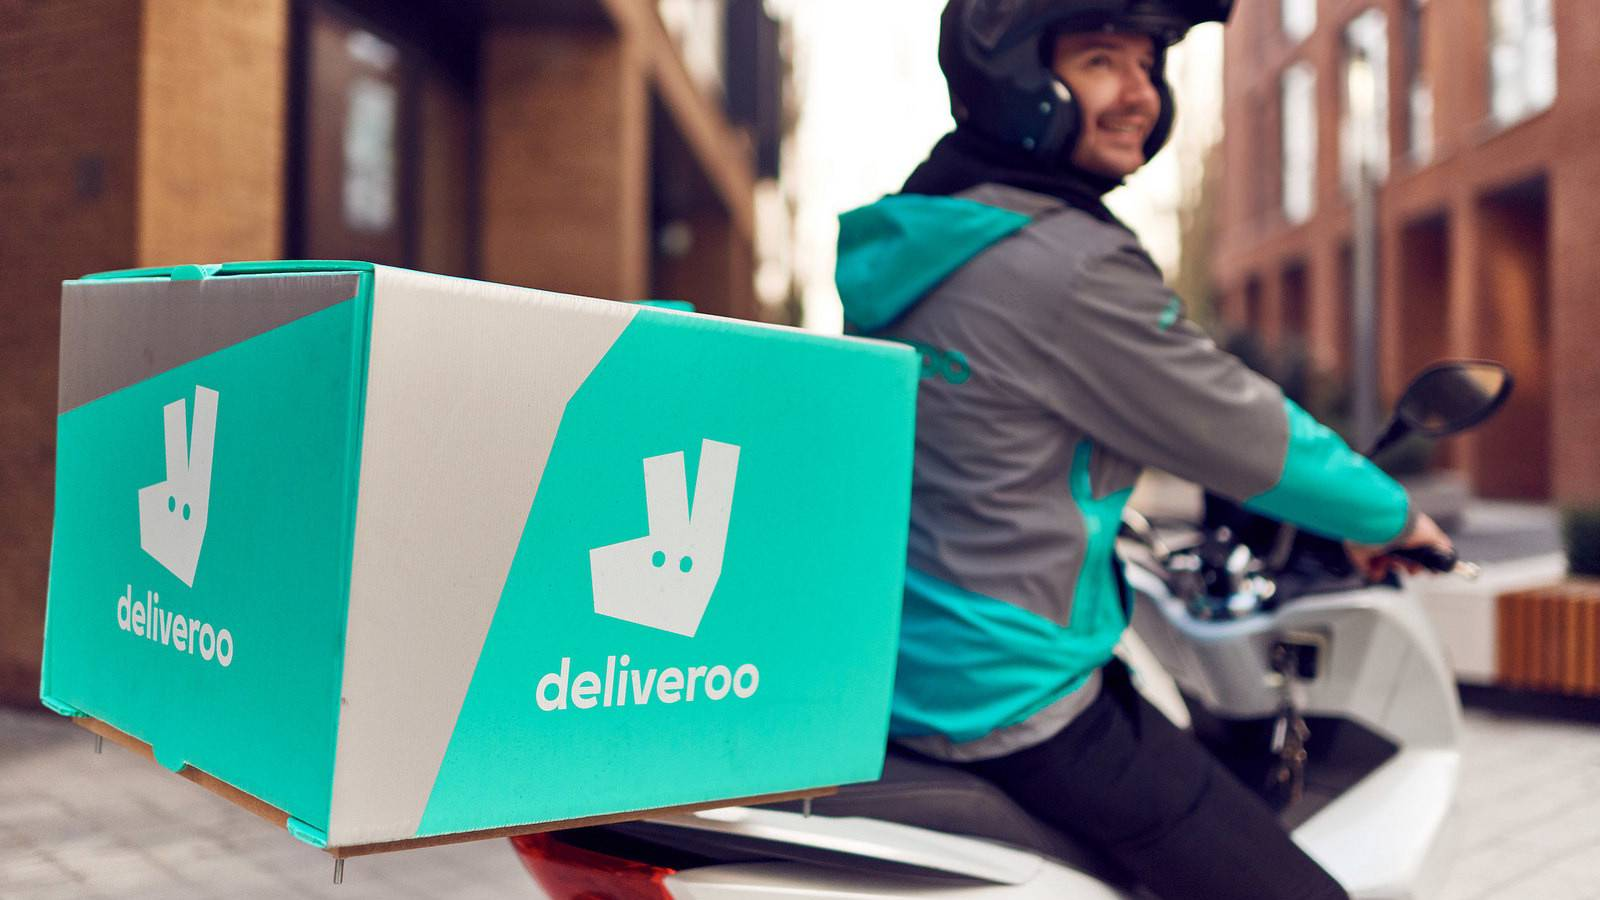 Marks and Spencer teams up with Deliveroo to deliver groceries online